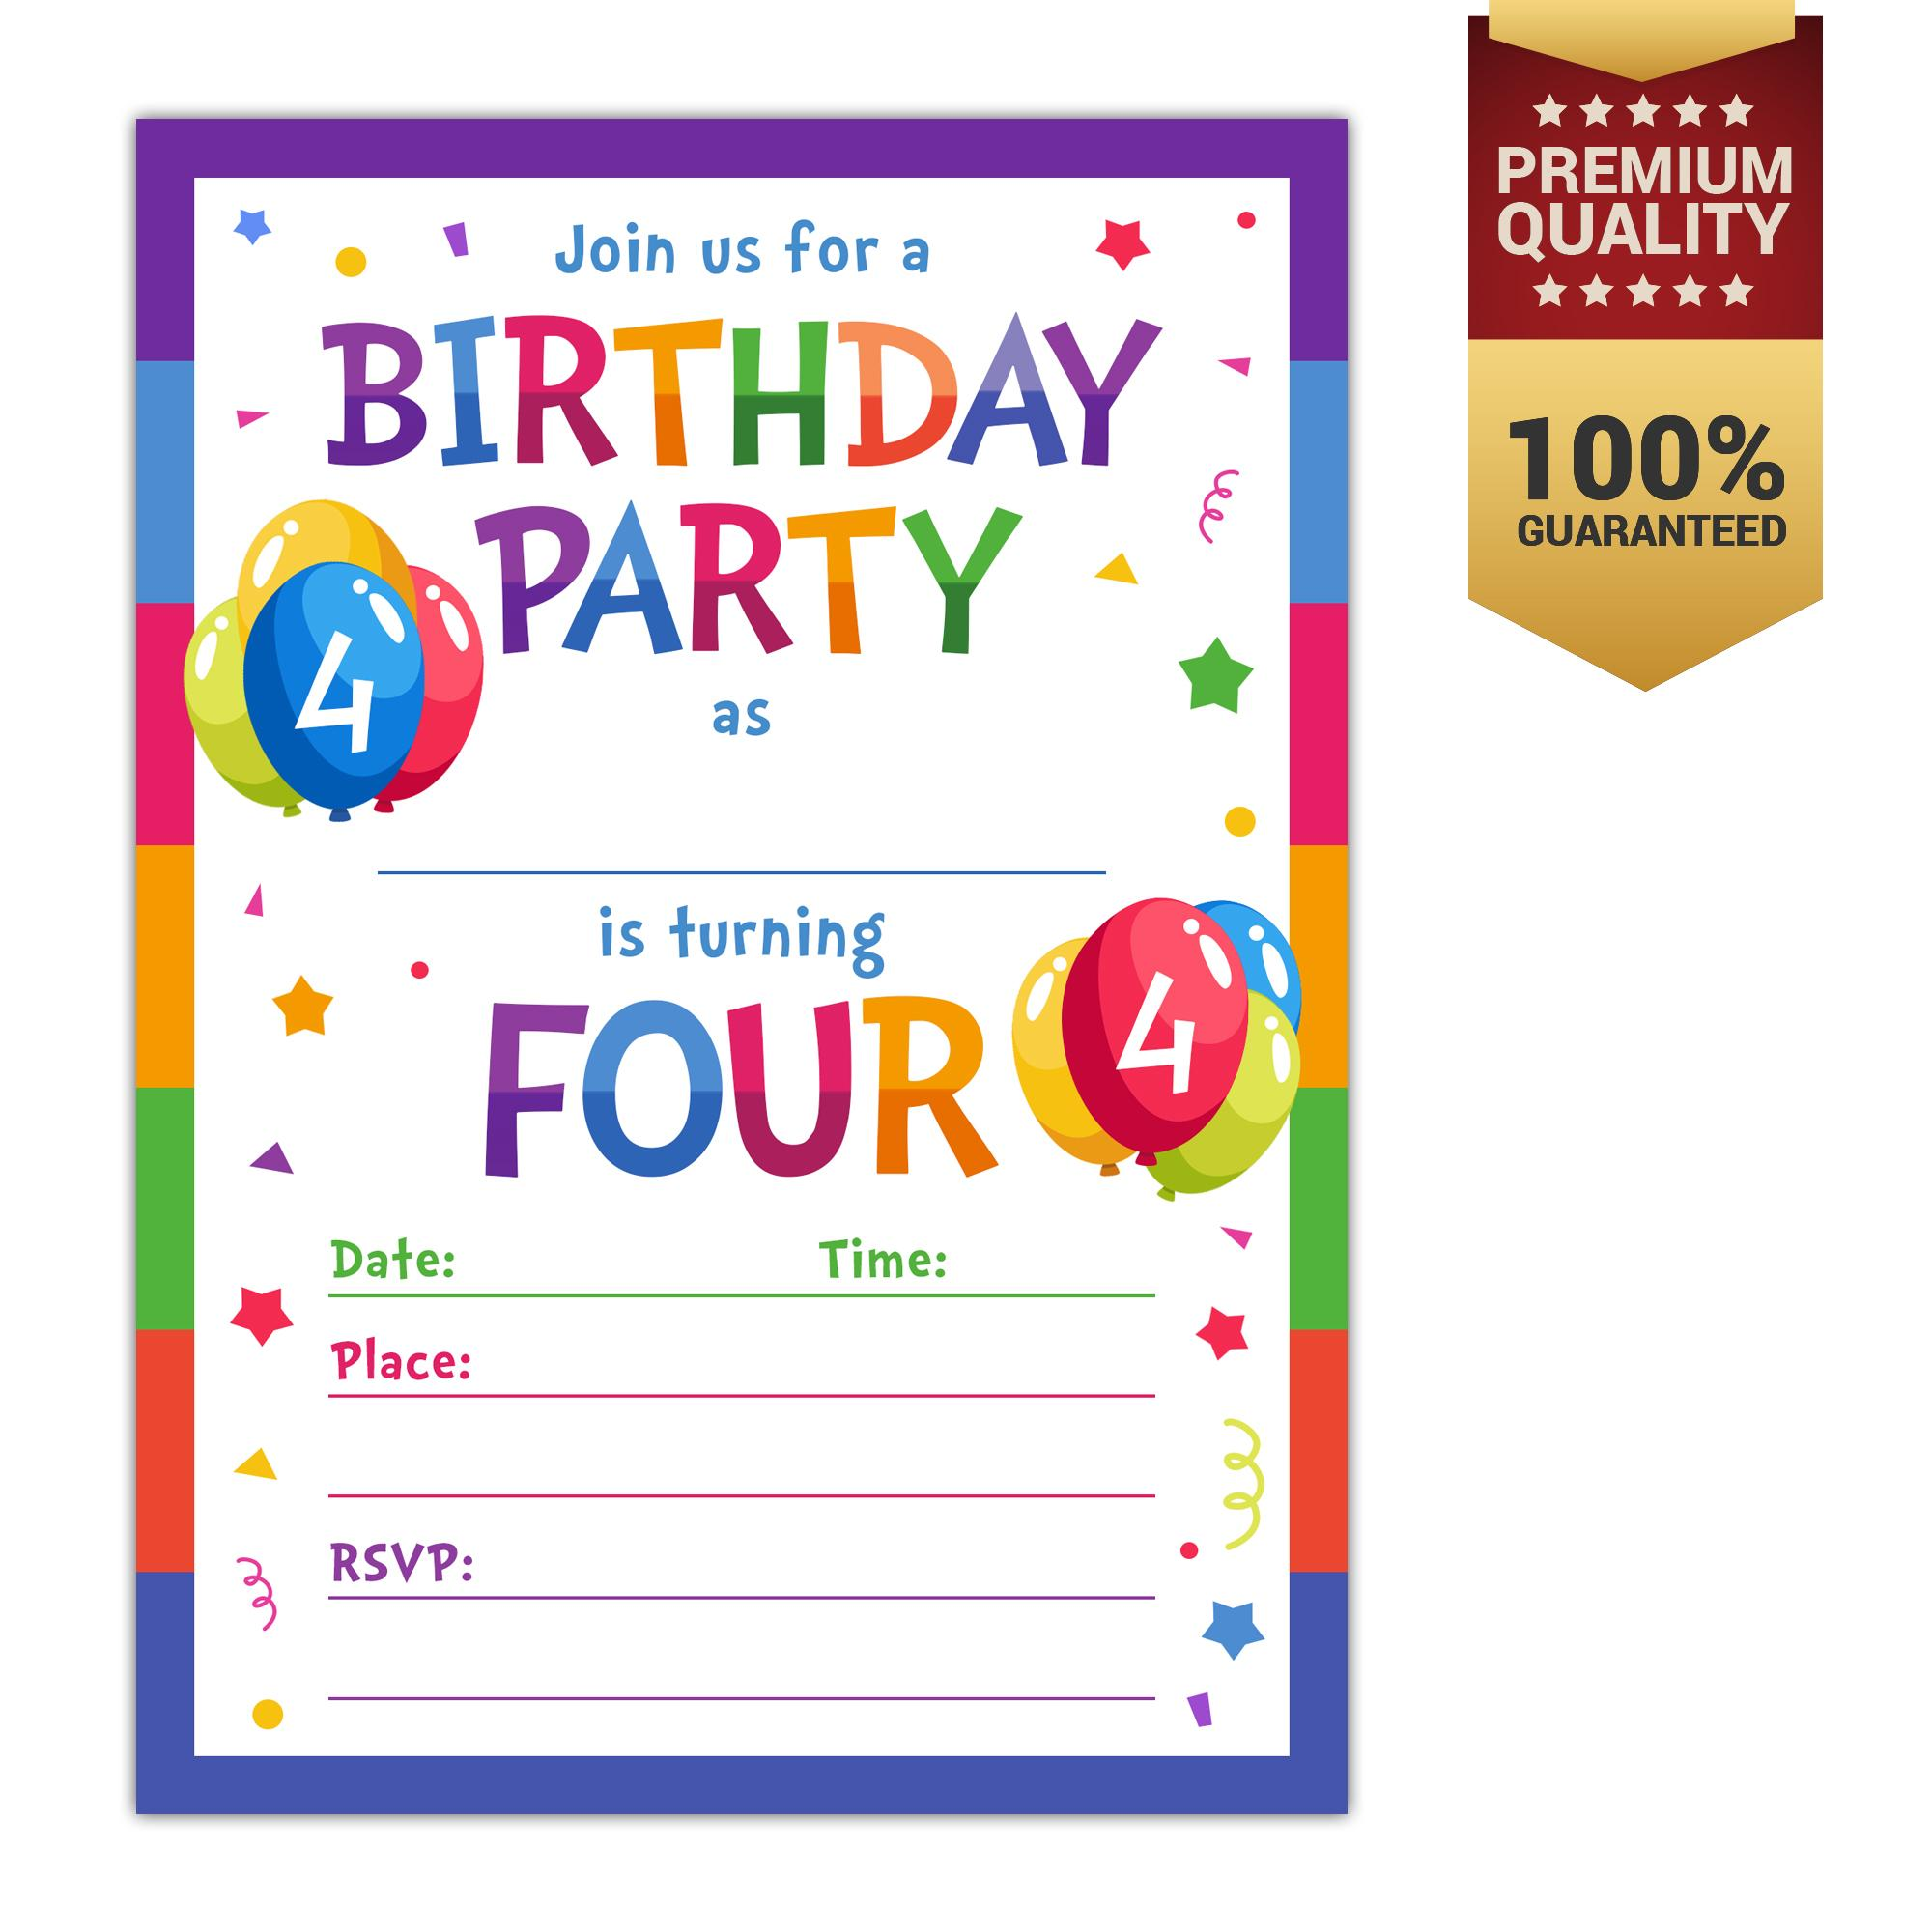 Invitation cards for sale party cards online brands prices 4th birthday party invitations with envelopes 10 count 4 year old kids birthday stopboris Choice Image